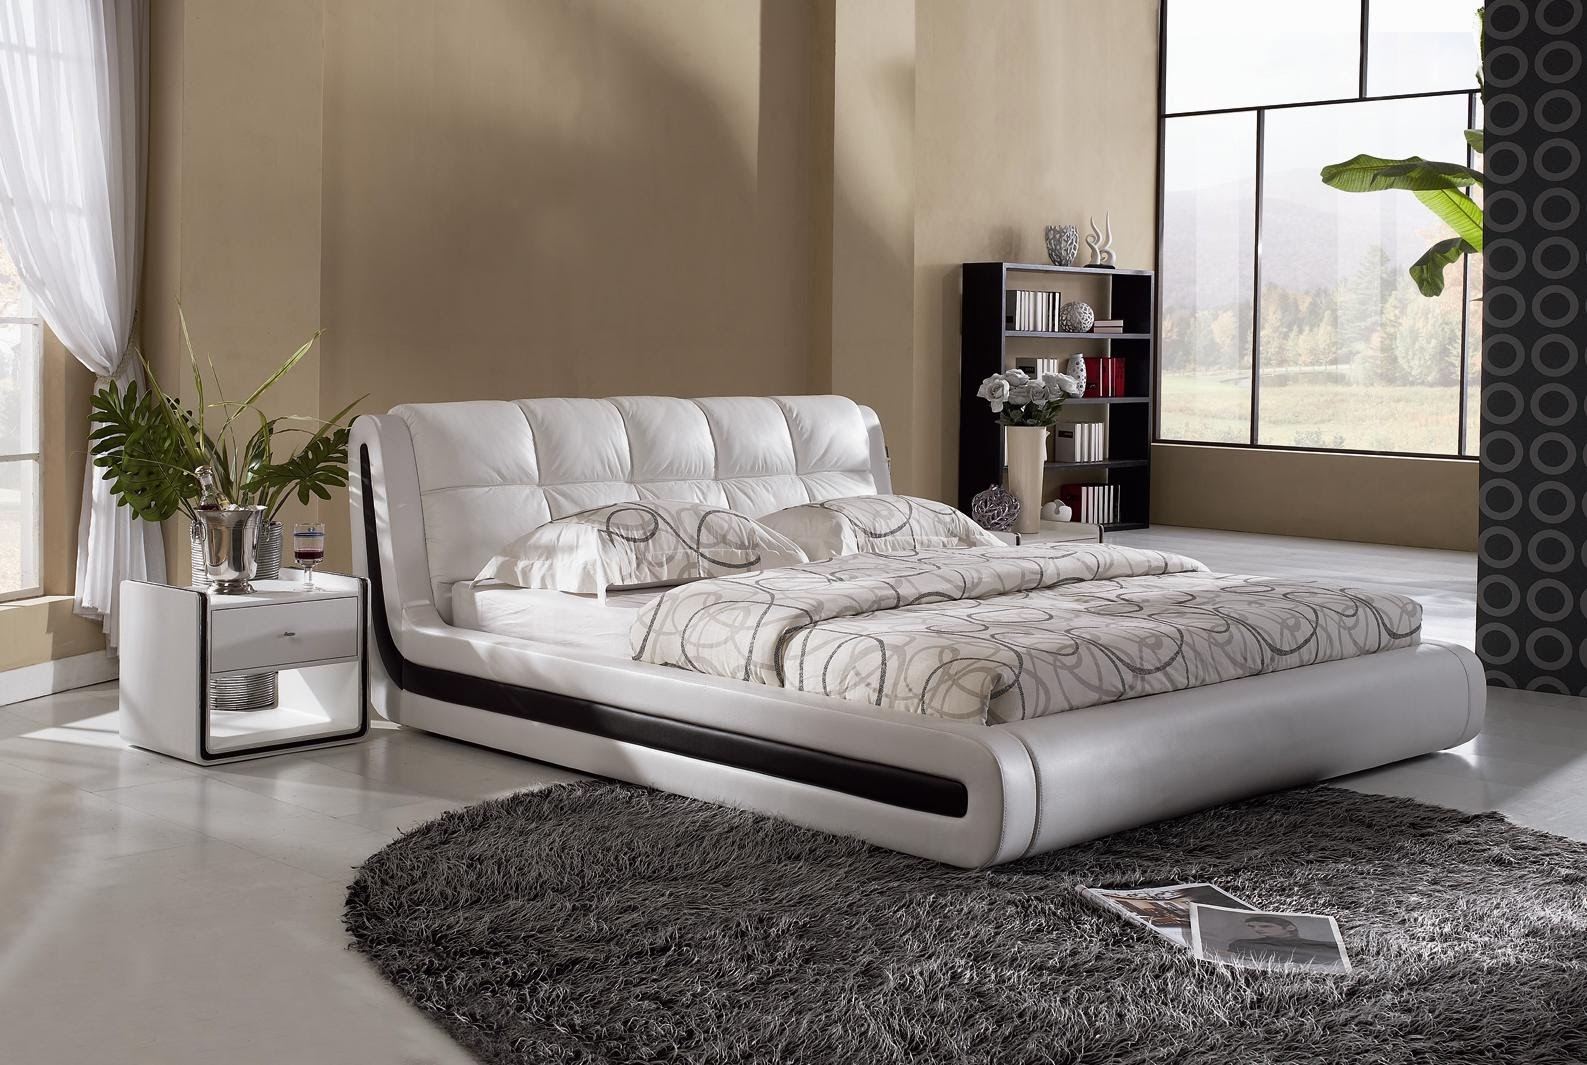 Magnificent Modern Bed Designs Pictures In Hd Free Wallpaper Home Interior And Landscaping Ologienasavecom